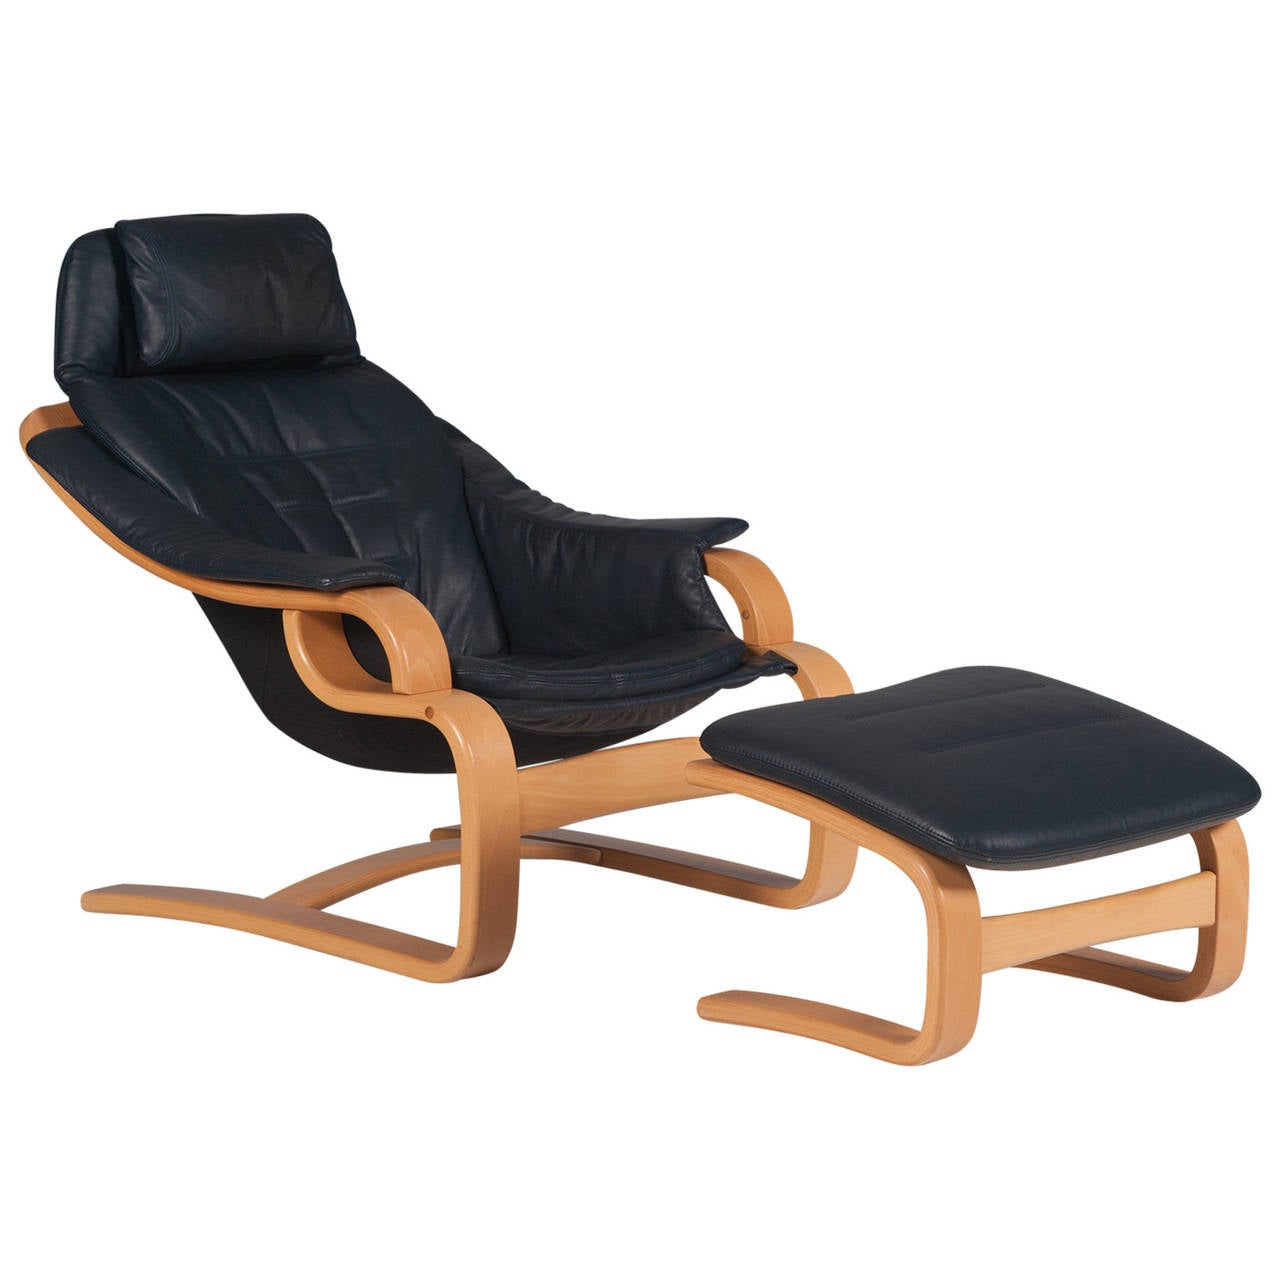 Danish black leather armchair with footstool 1970s at 1stdibs for Black leather footstool